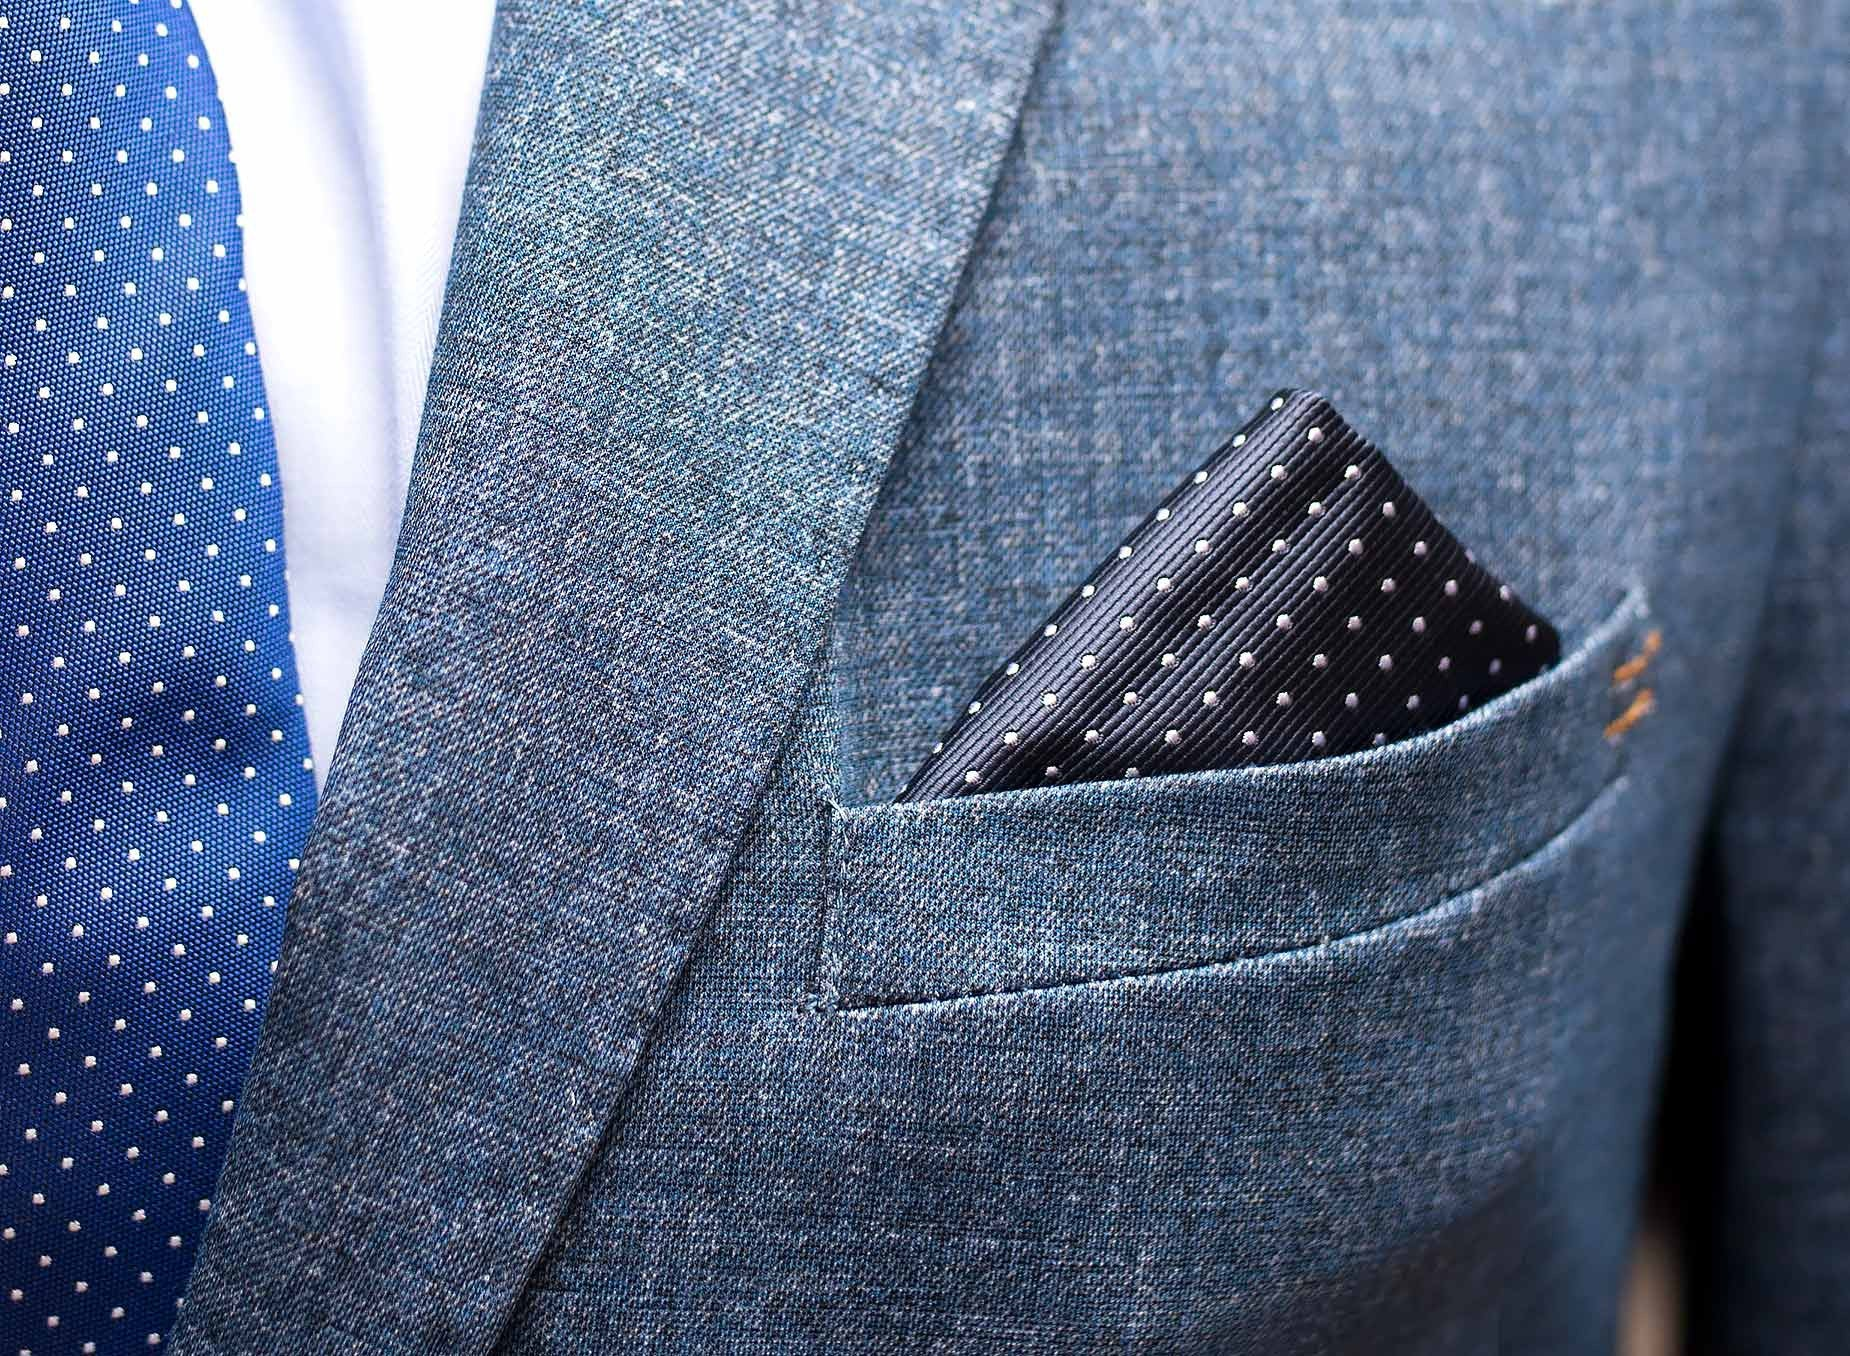 Who Invented The Pocket Square